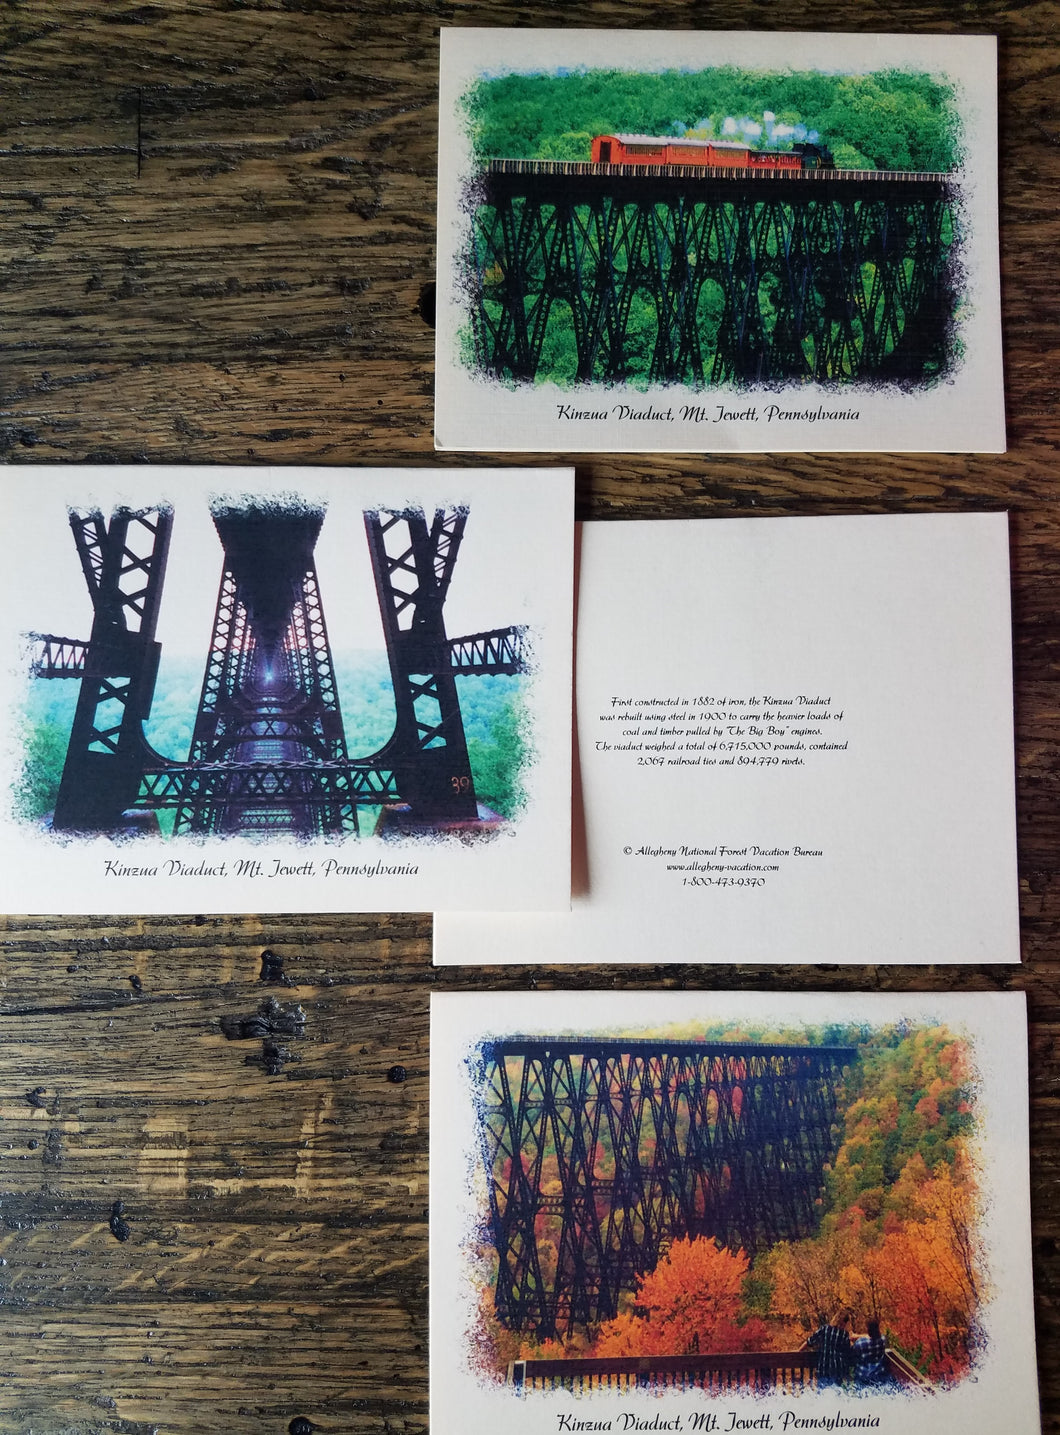 Historic Kinzua Viaduct Note Cards